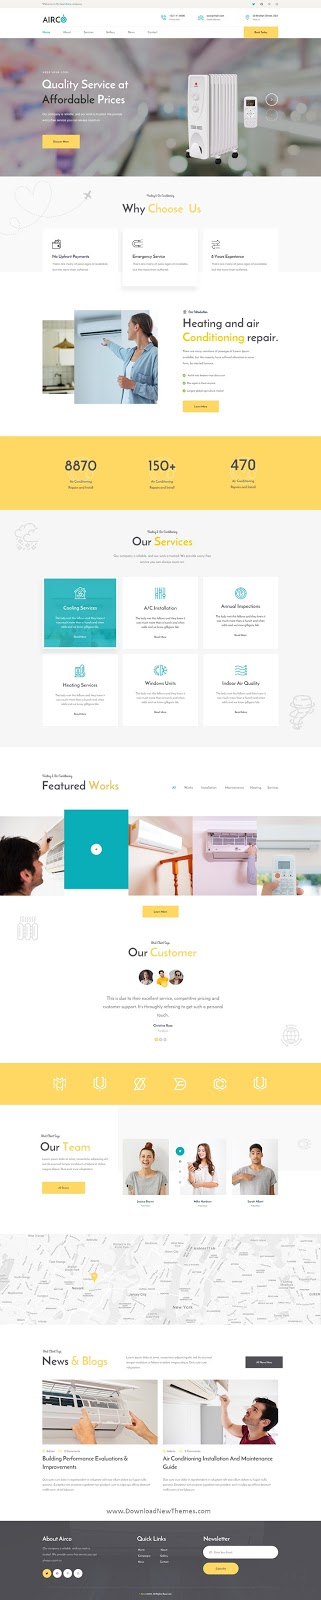 Airco - AC Repair PSD Template